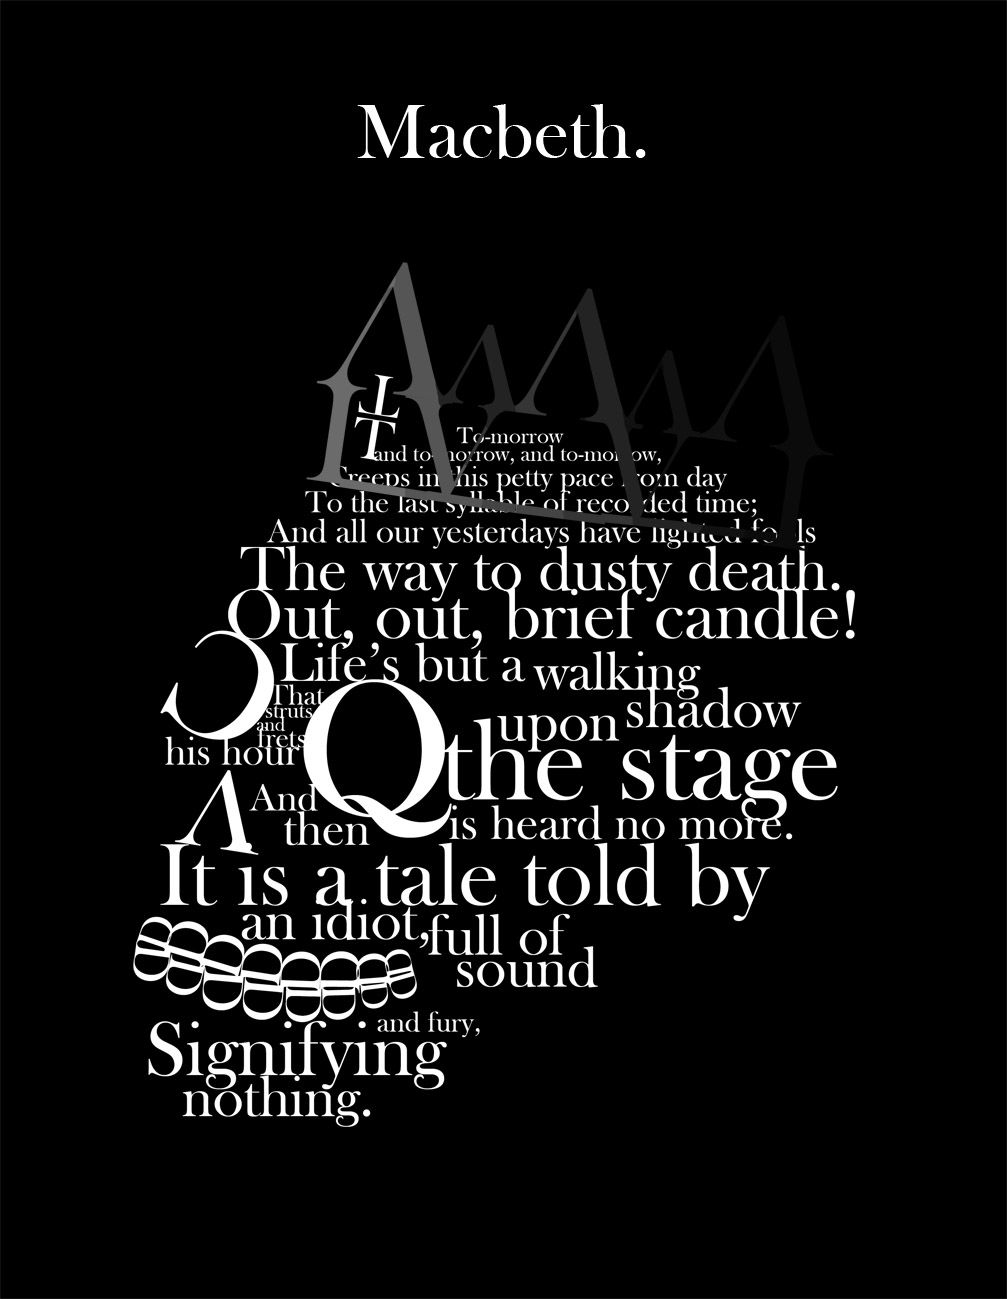 Shakespeare Forever Photo Literary Quote Out Brief Candle Quotes Macbeth Tomorrow Soliloquy Analysis Analysi